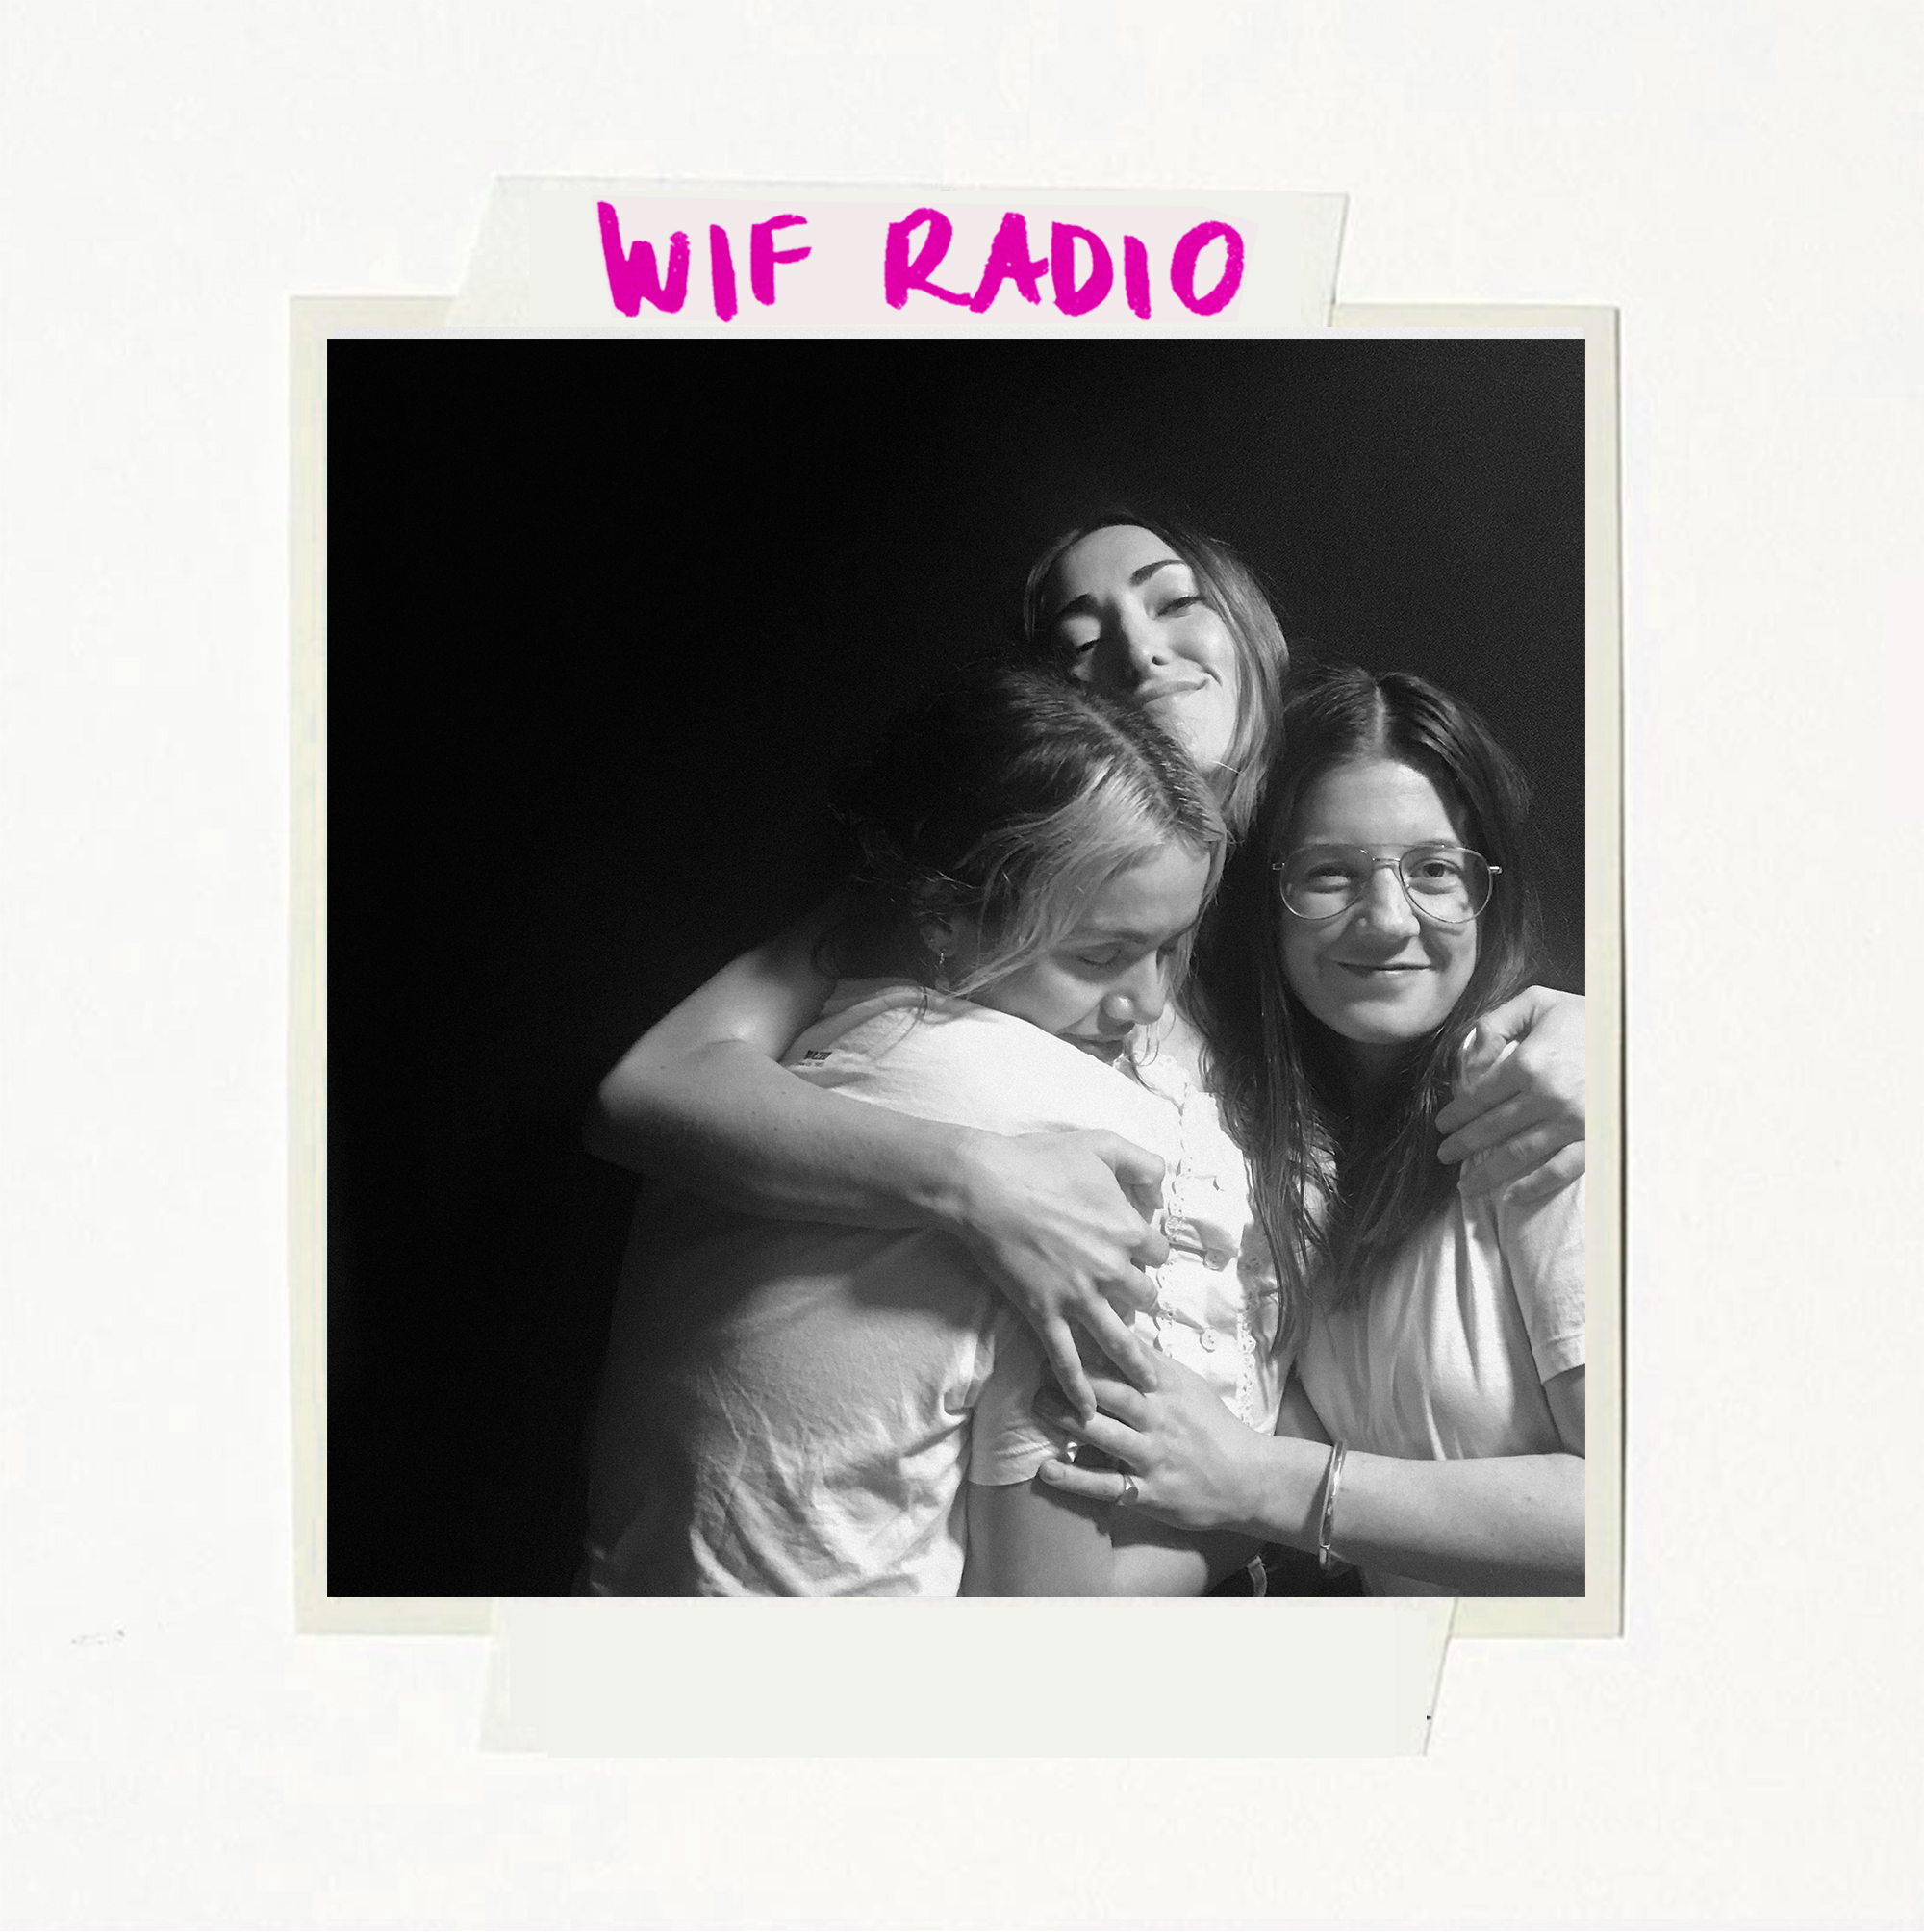 WIFRADIO_JUNE19.jpg